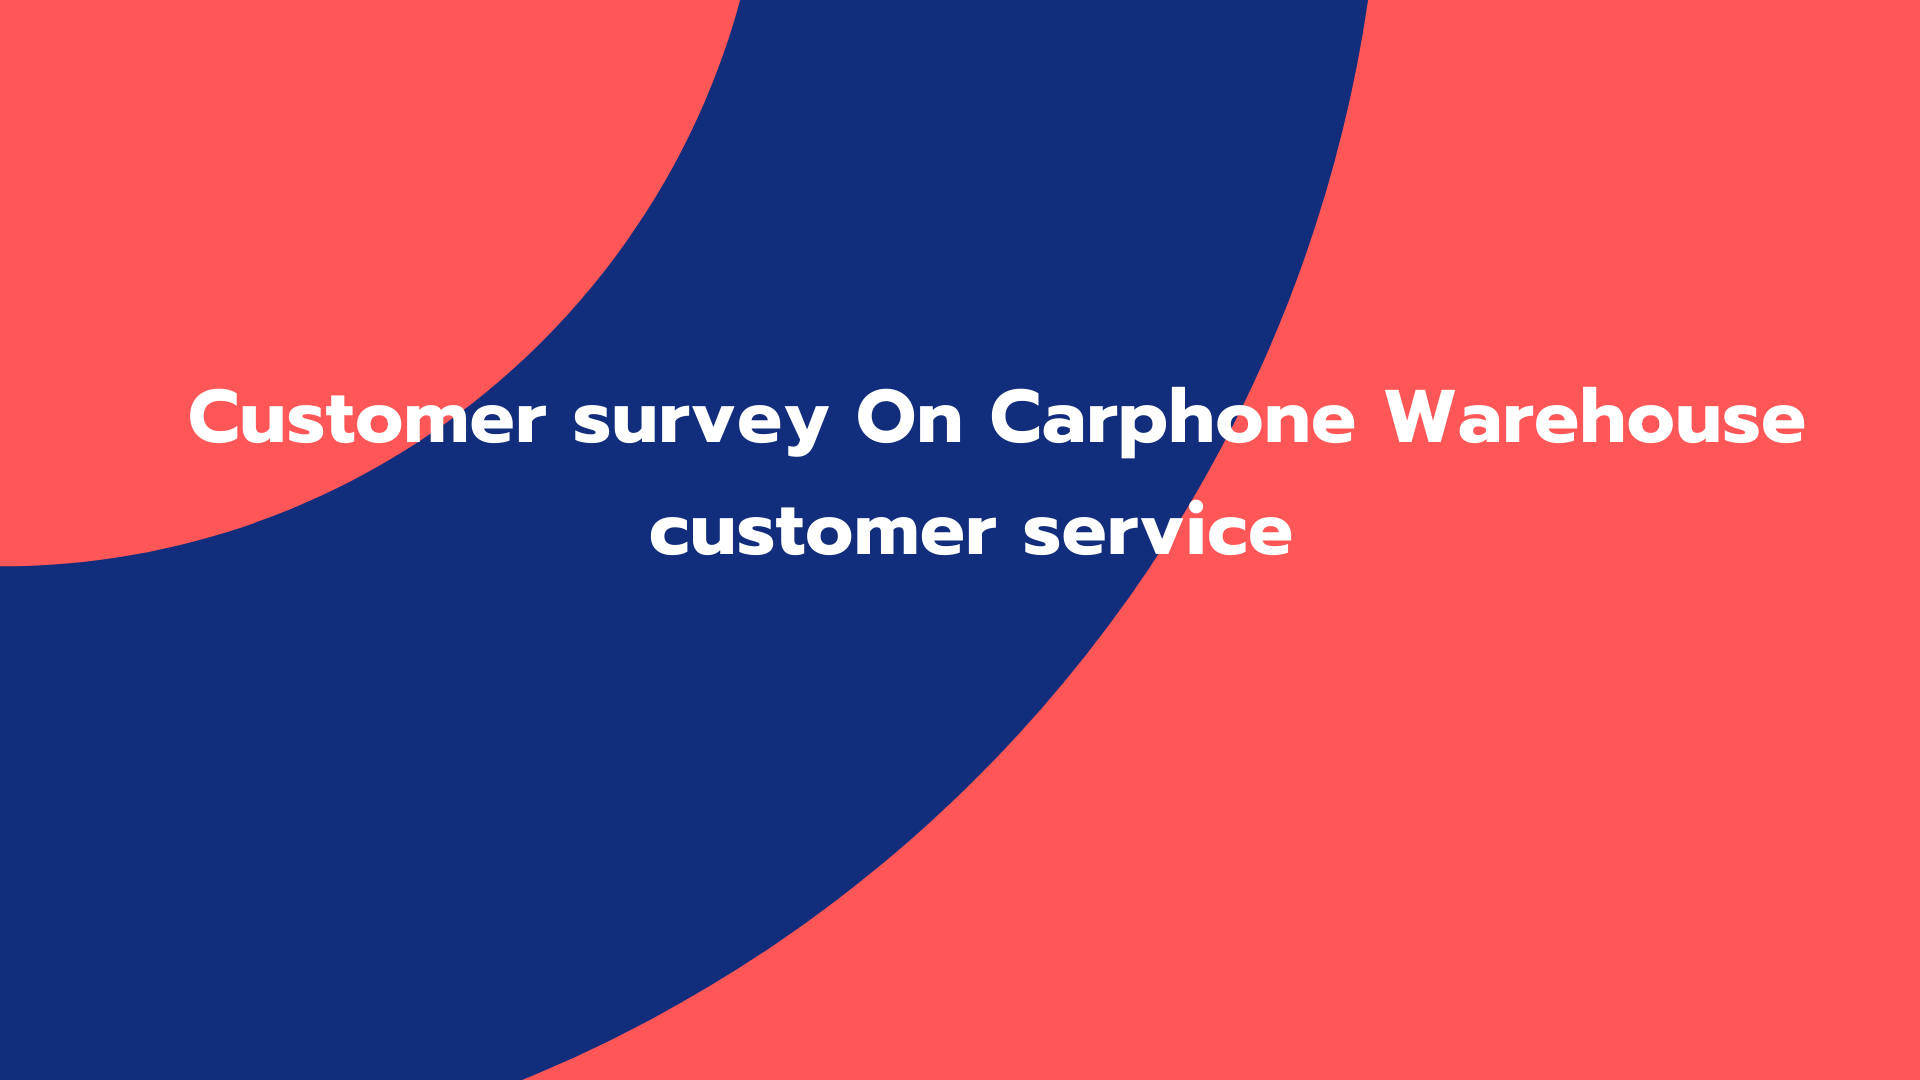 Customer survey On Carphone Warehouse Customer Service